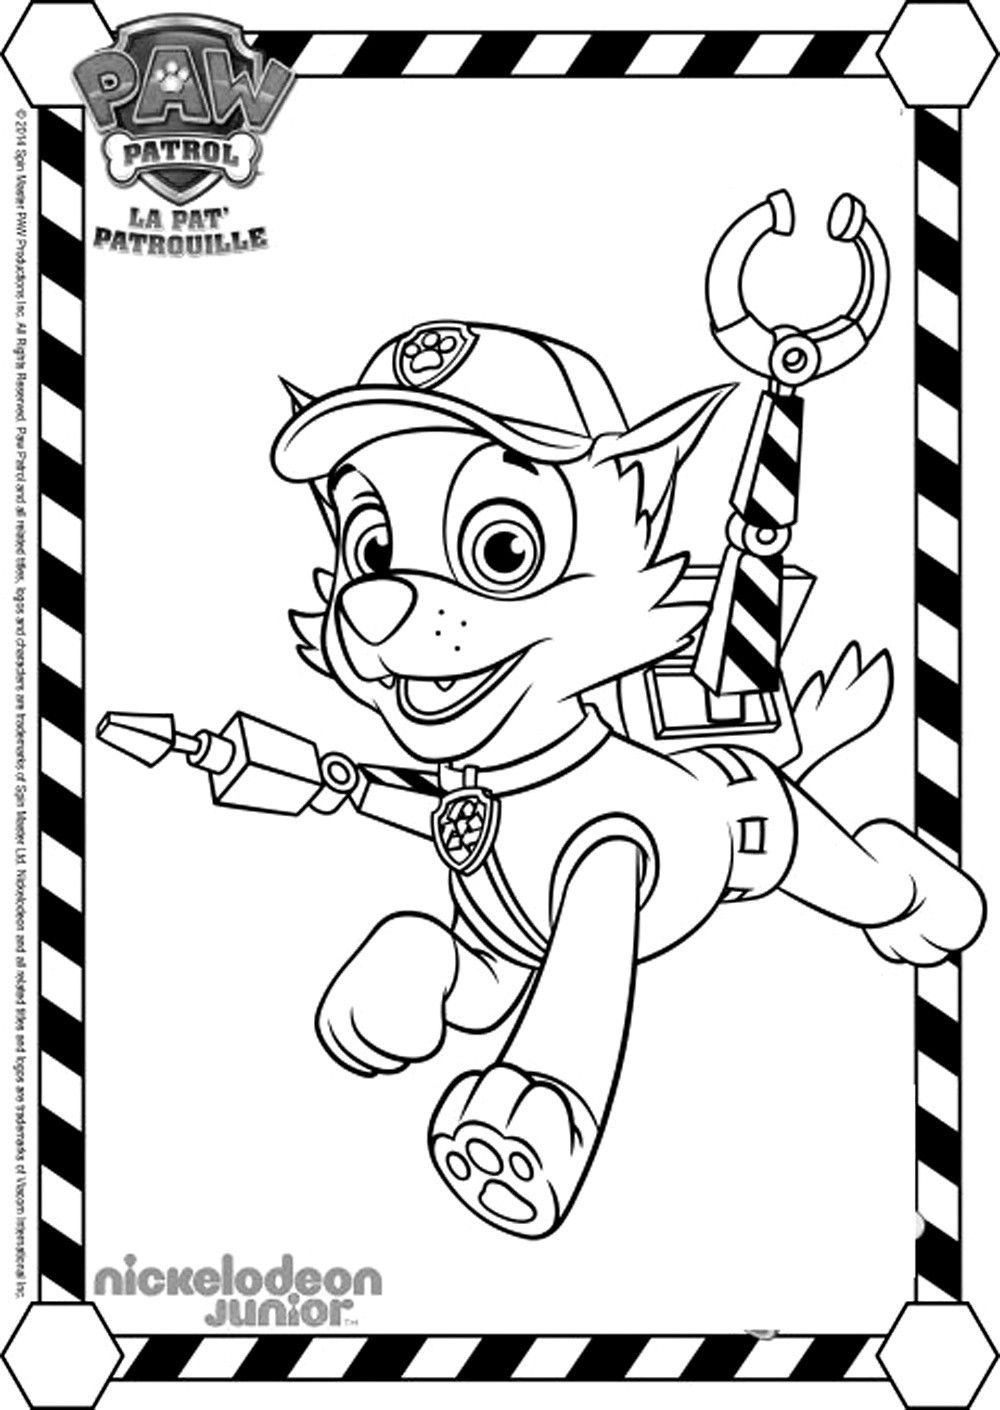 paw patrol lookout coloring page 24 coloring page paw patrol in 2020 paw patrol coloring page lookout coloring paw patrol